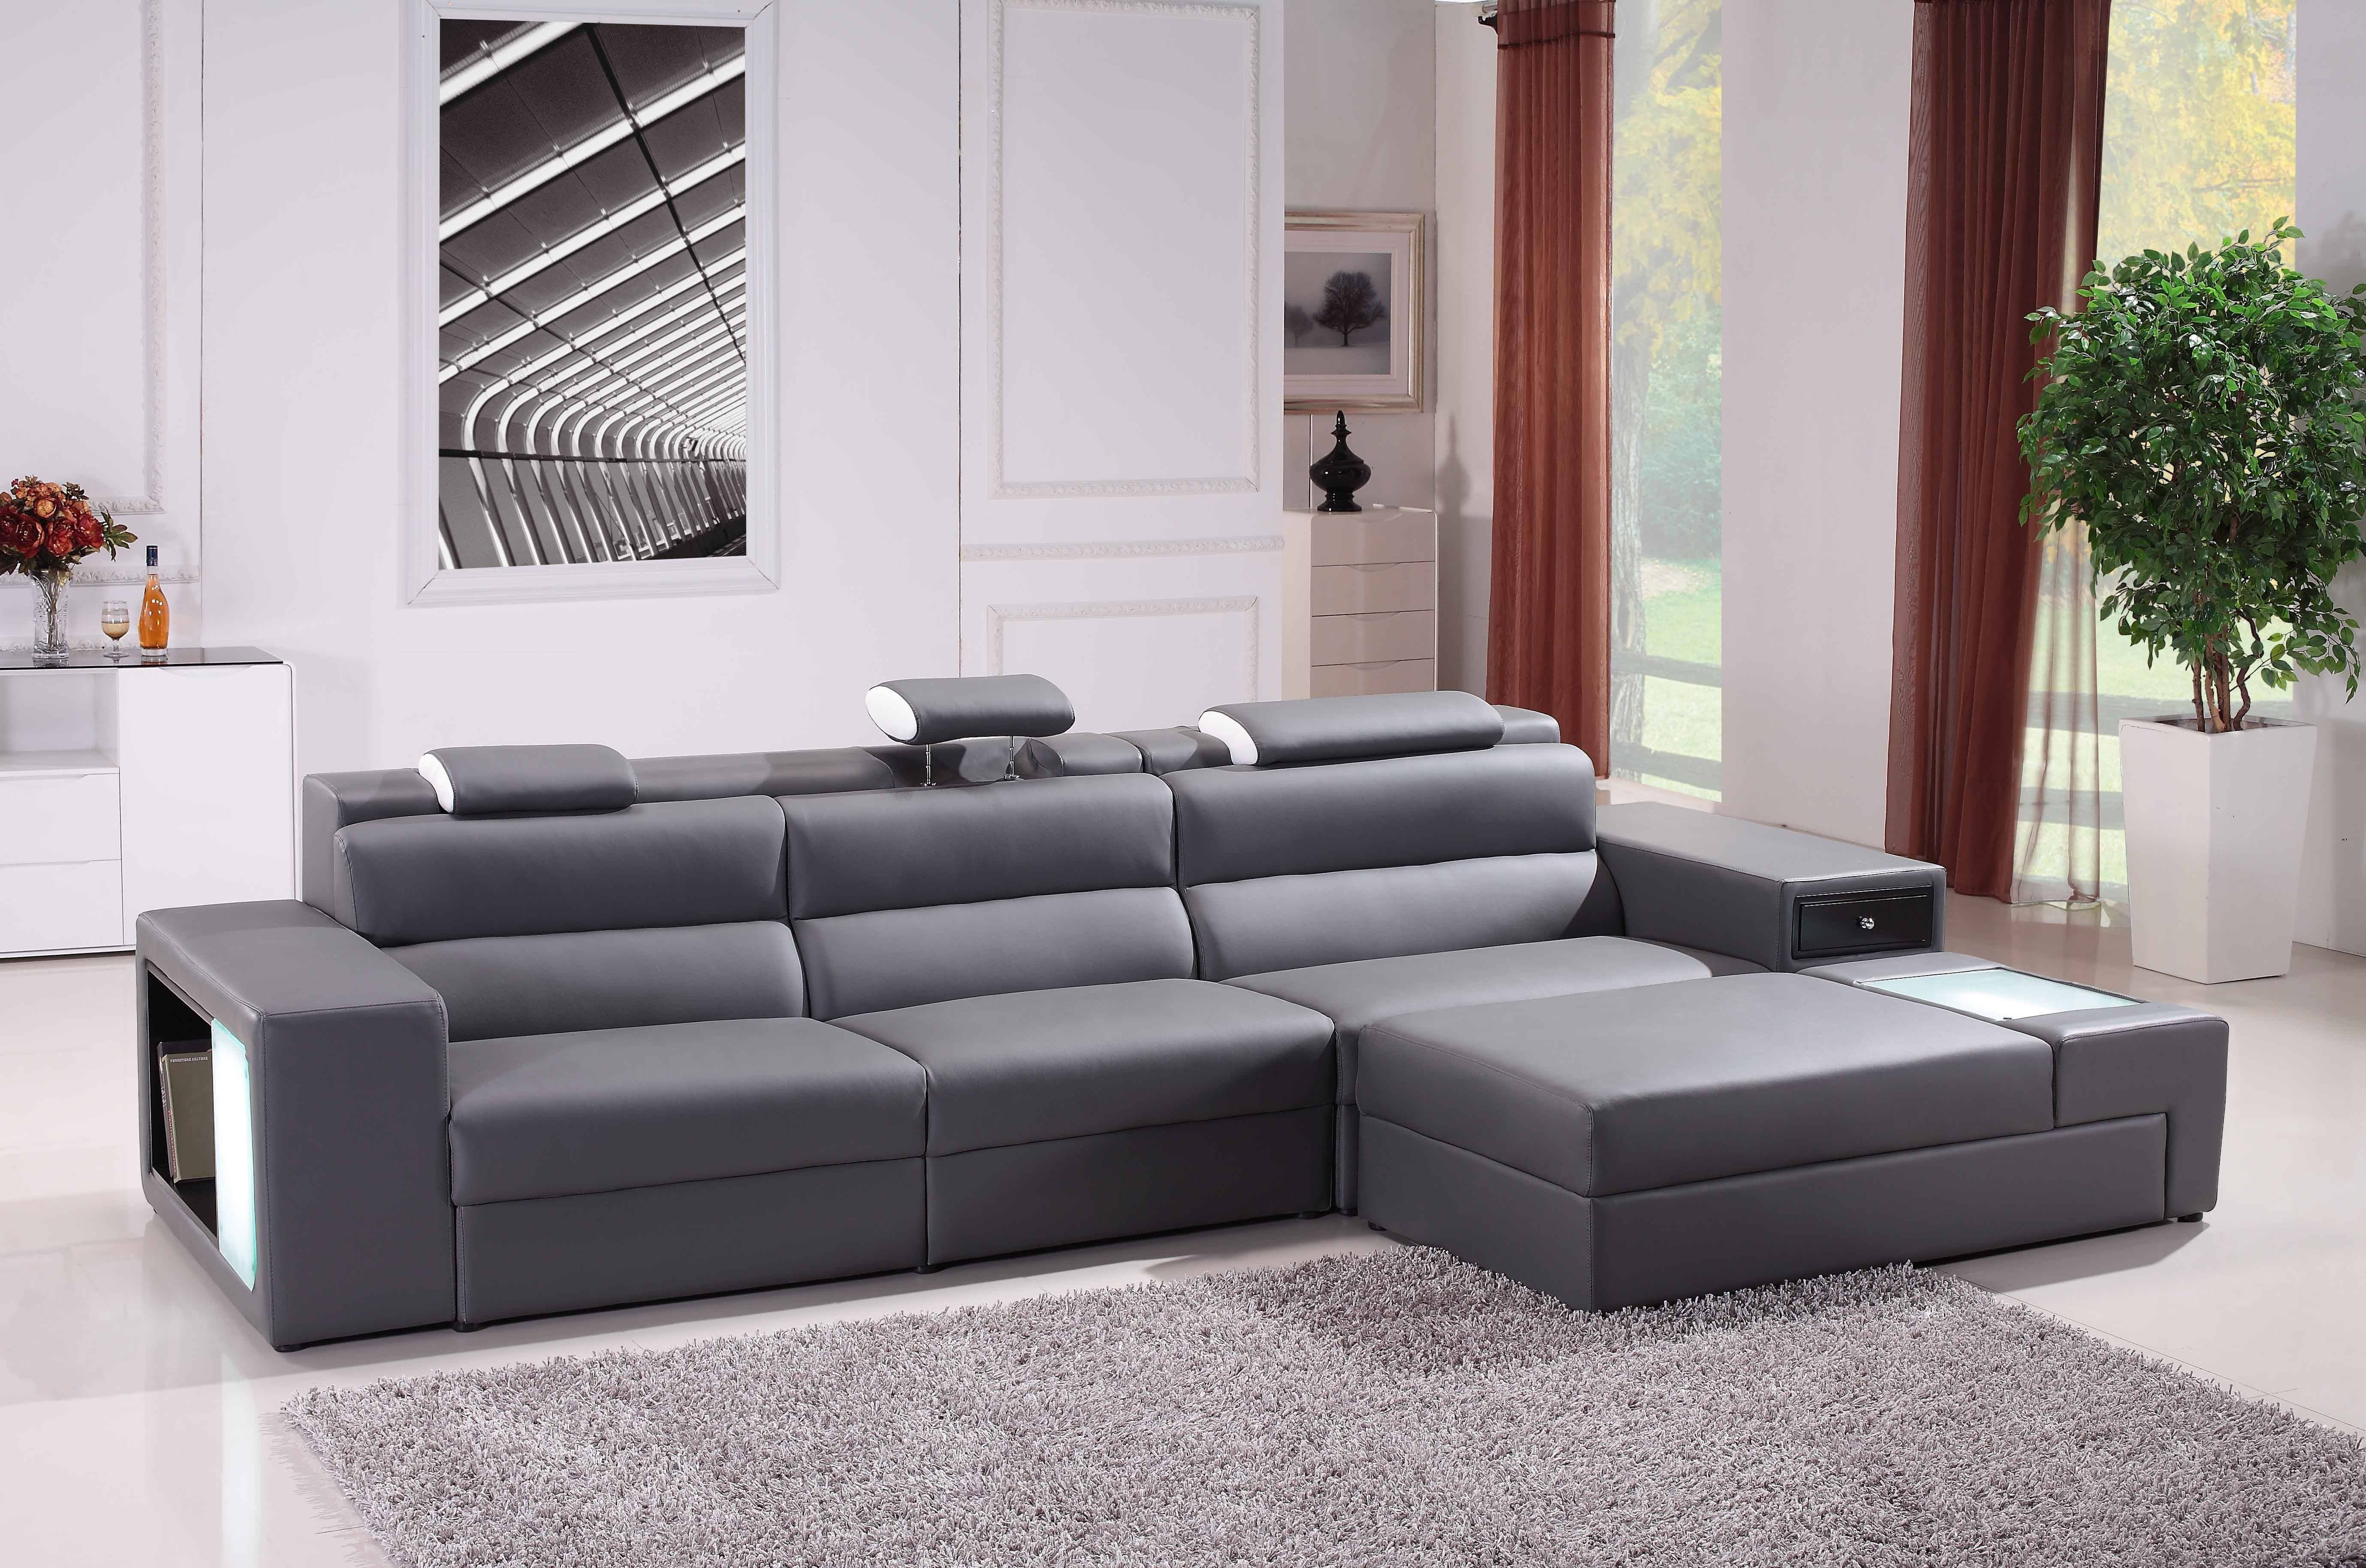 Wonderful Navy Blue Leather Sectional Sofa 91 In Cindy Crawford In Cindy Crawford Leather Sectional Sofas (View 13 of 15)